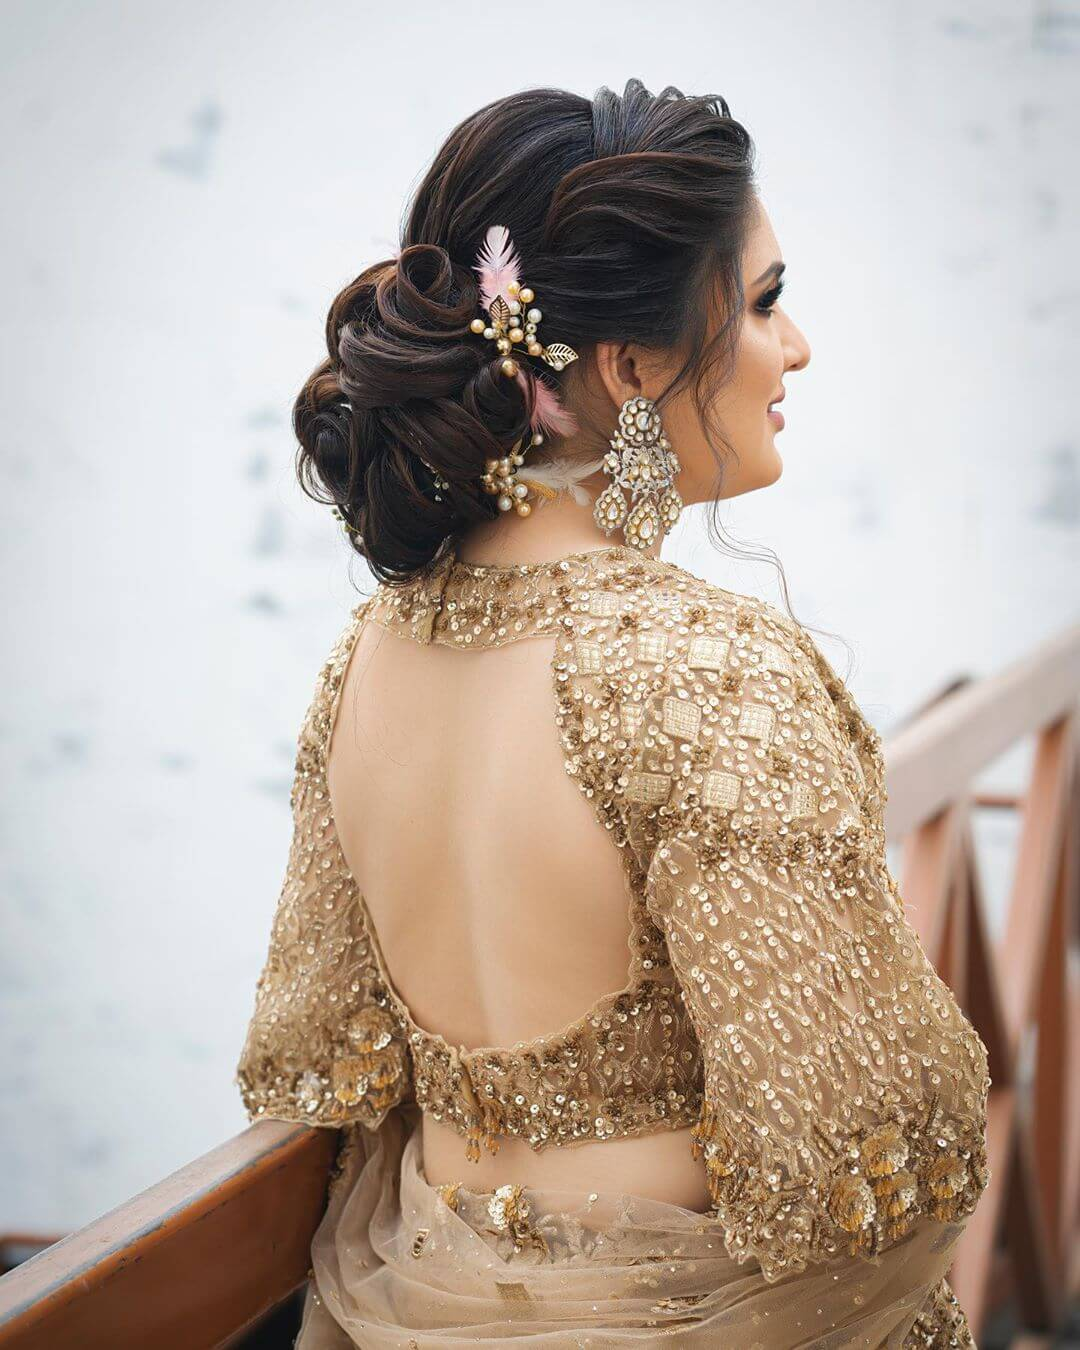 Golden Oval Shape Backless Blouse Design